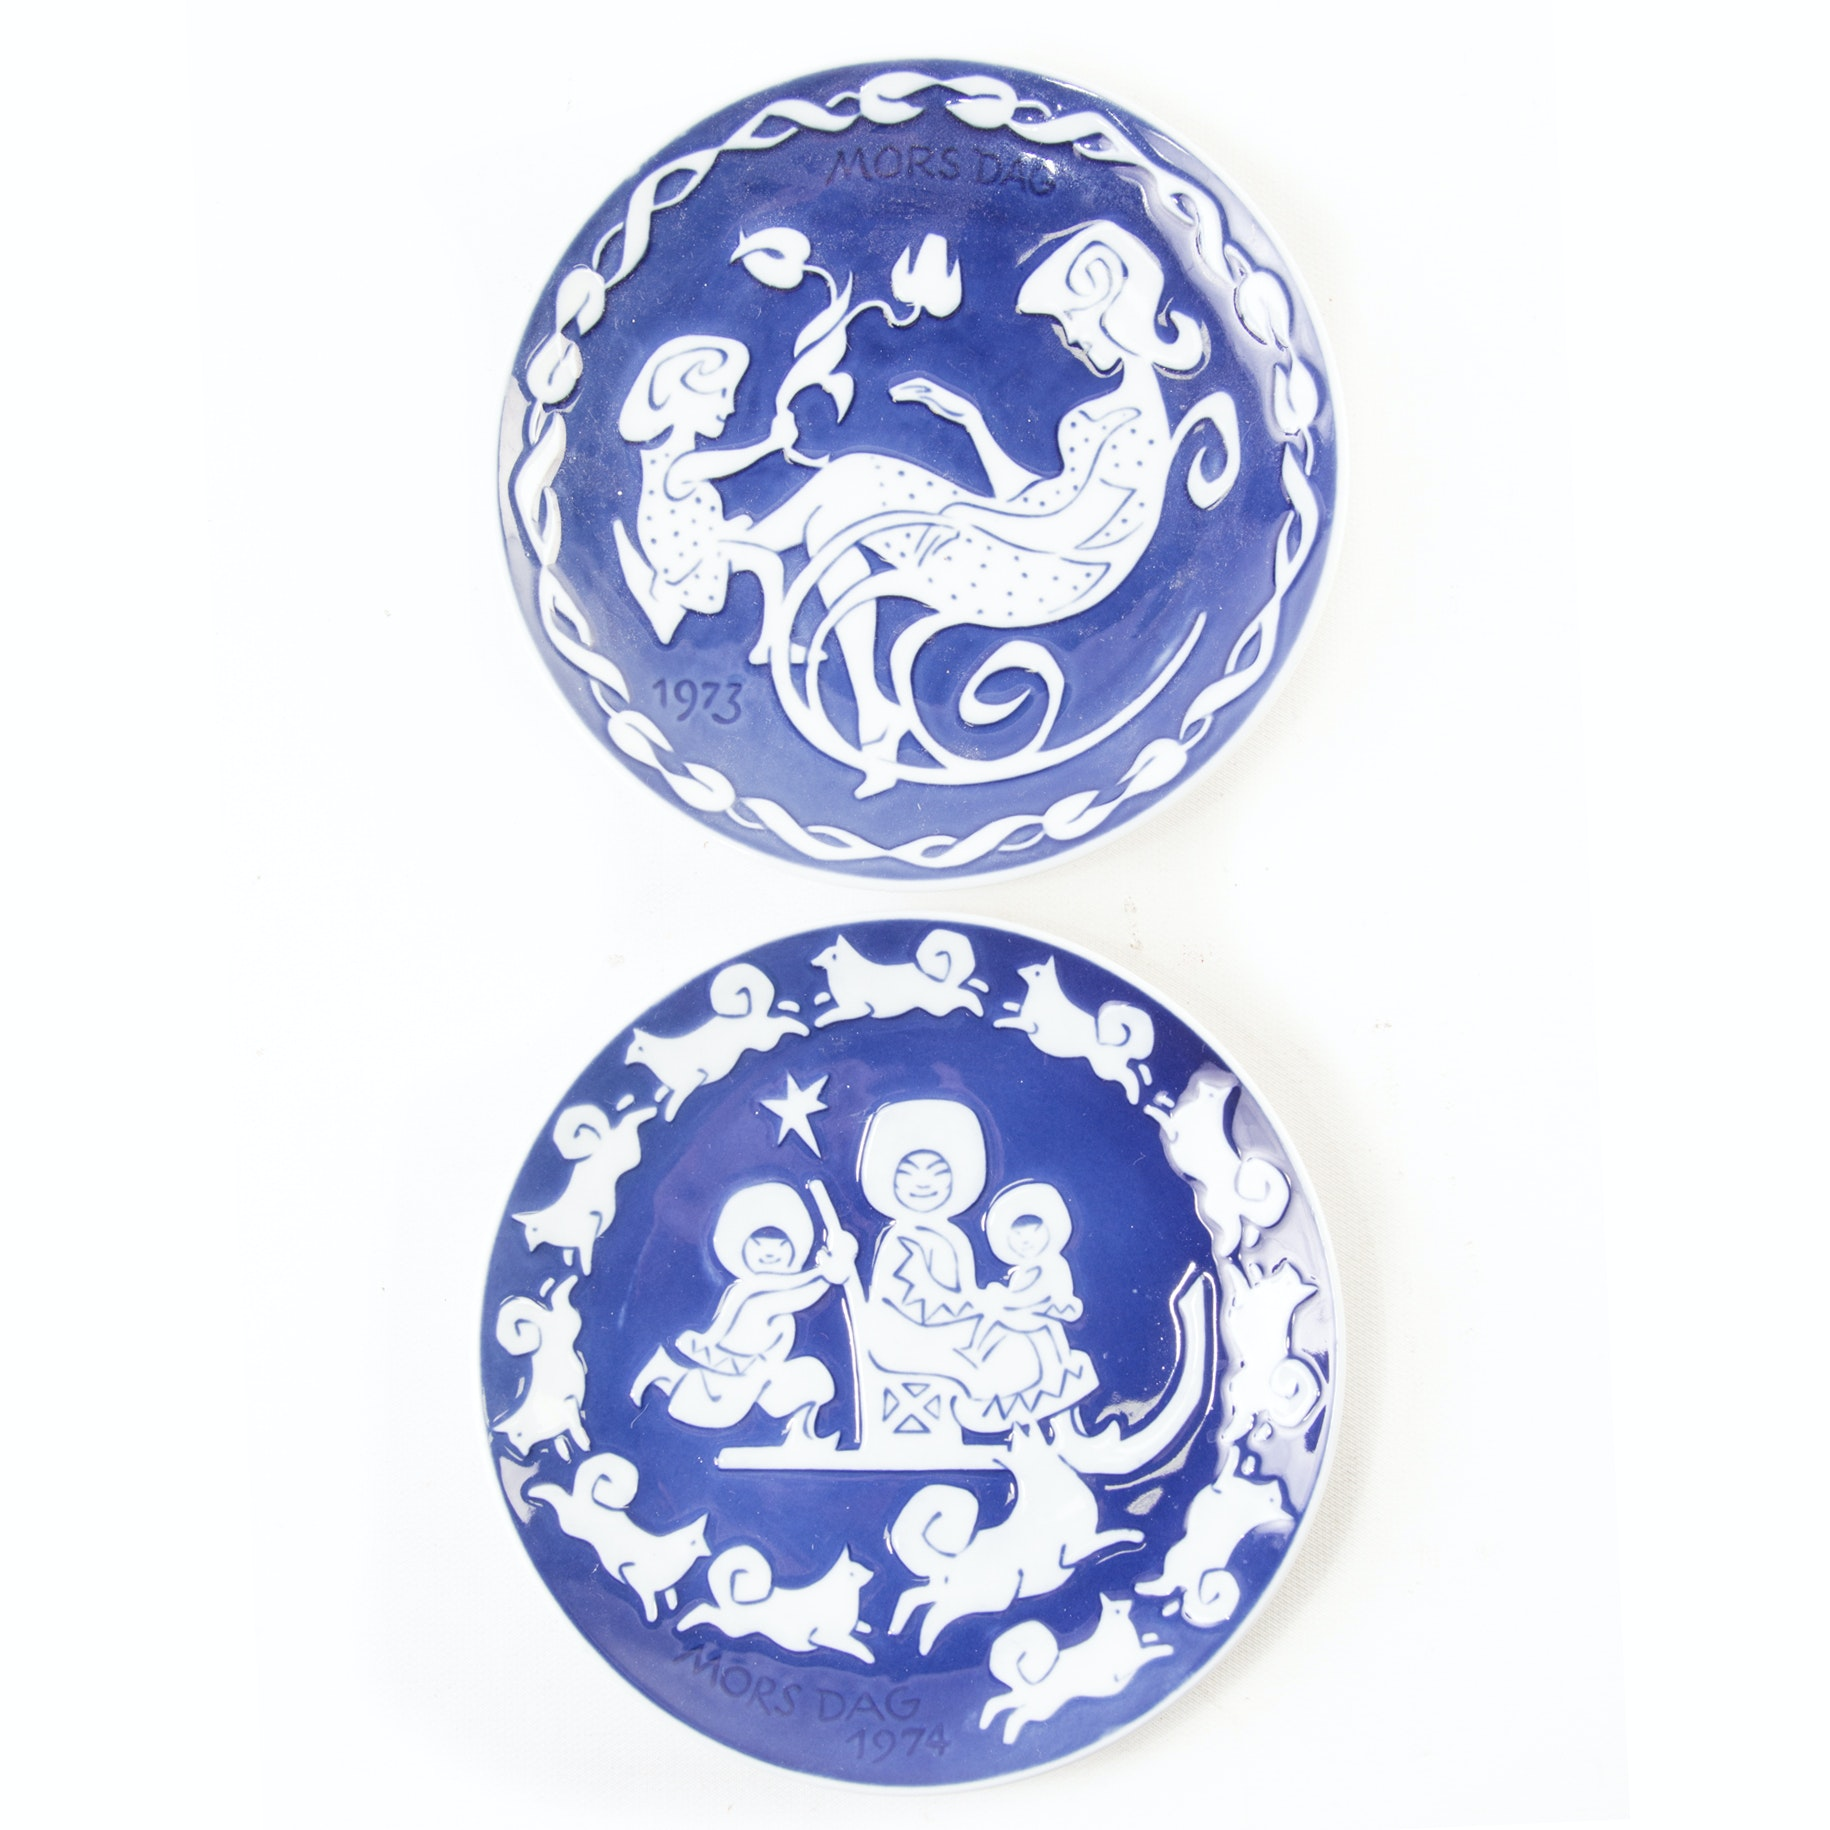 Royal Copenhagen Vintage 1973, 1974 Mother's Day Plates